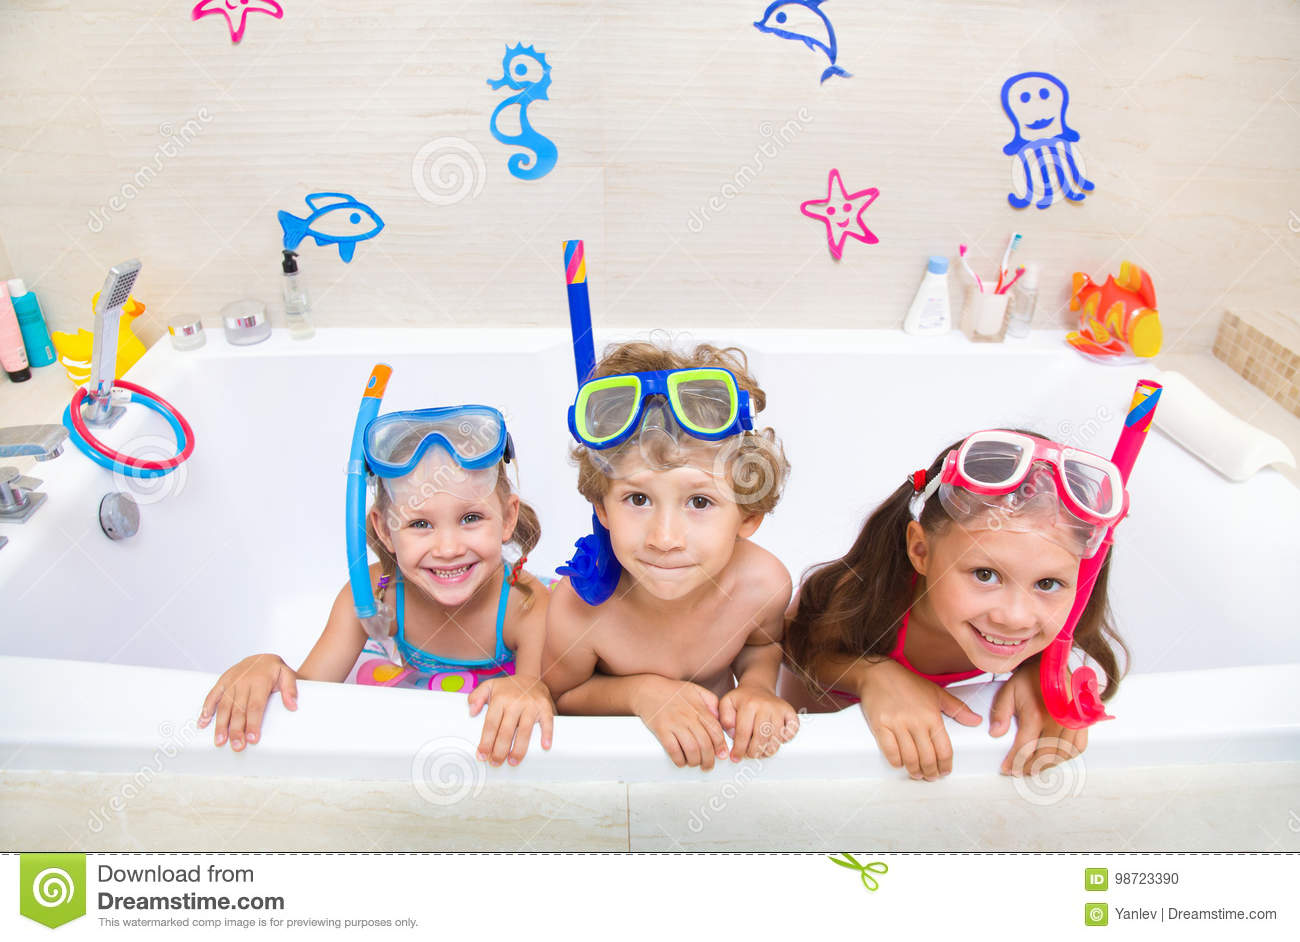 552b0d9a80d8b Little children in swimsuits play in the bathroom like in the sea